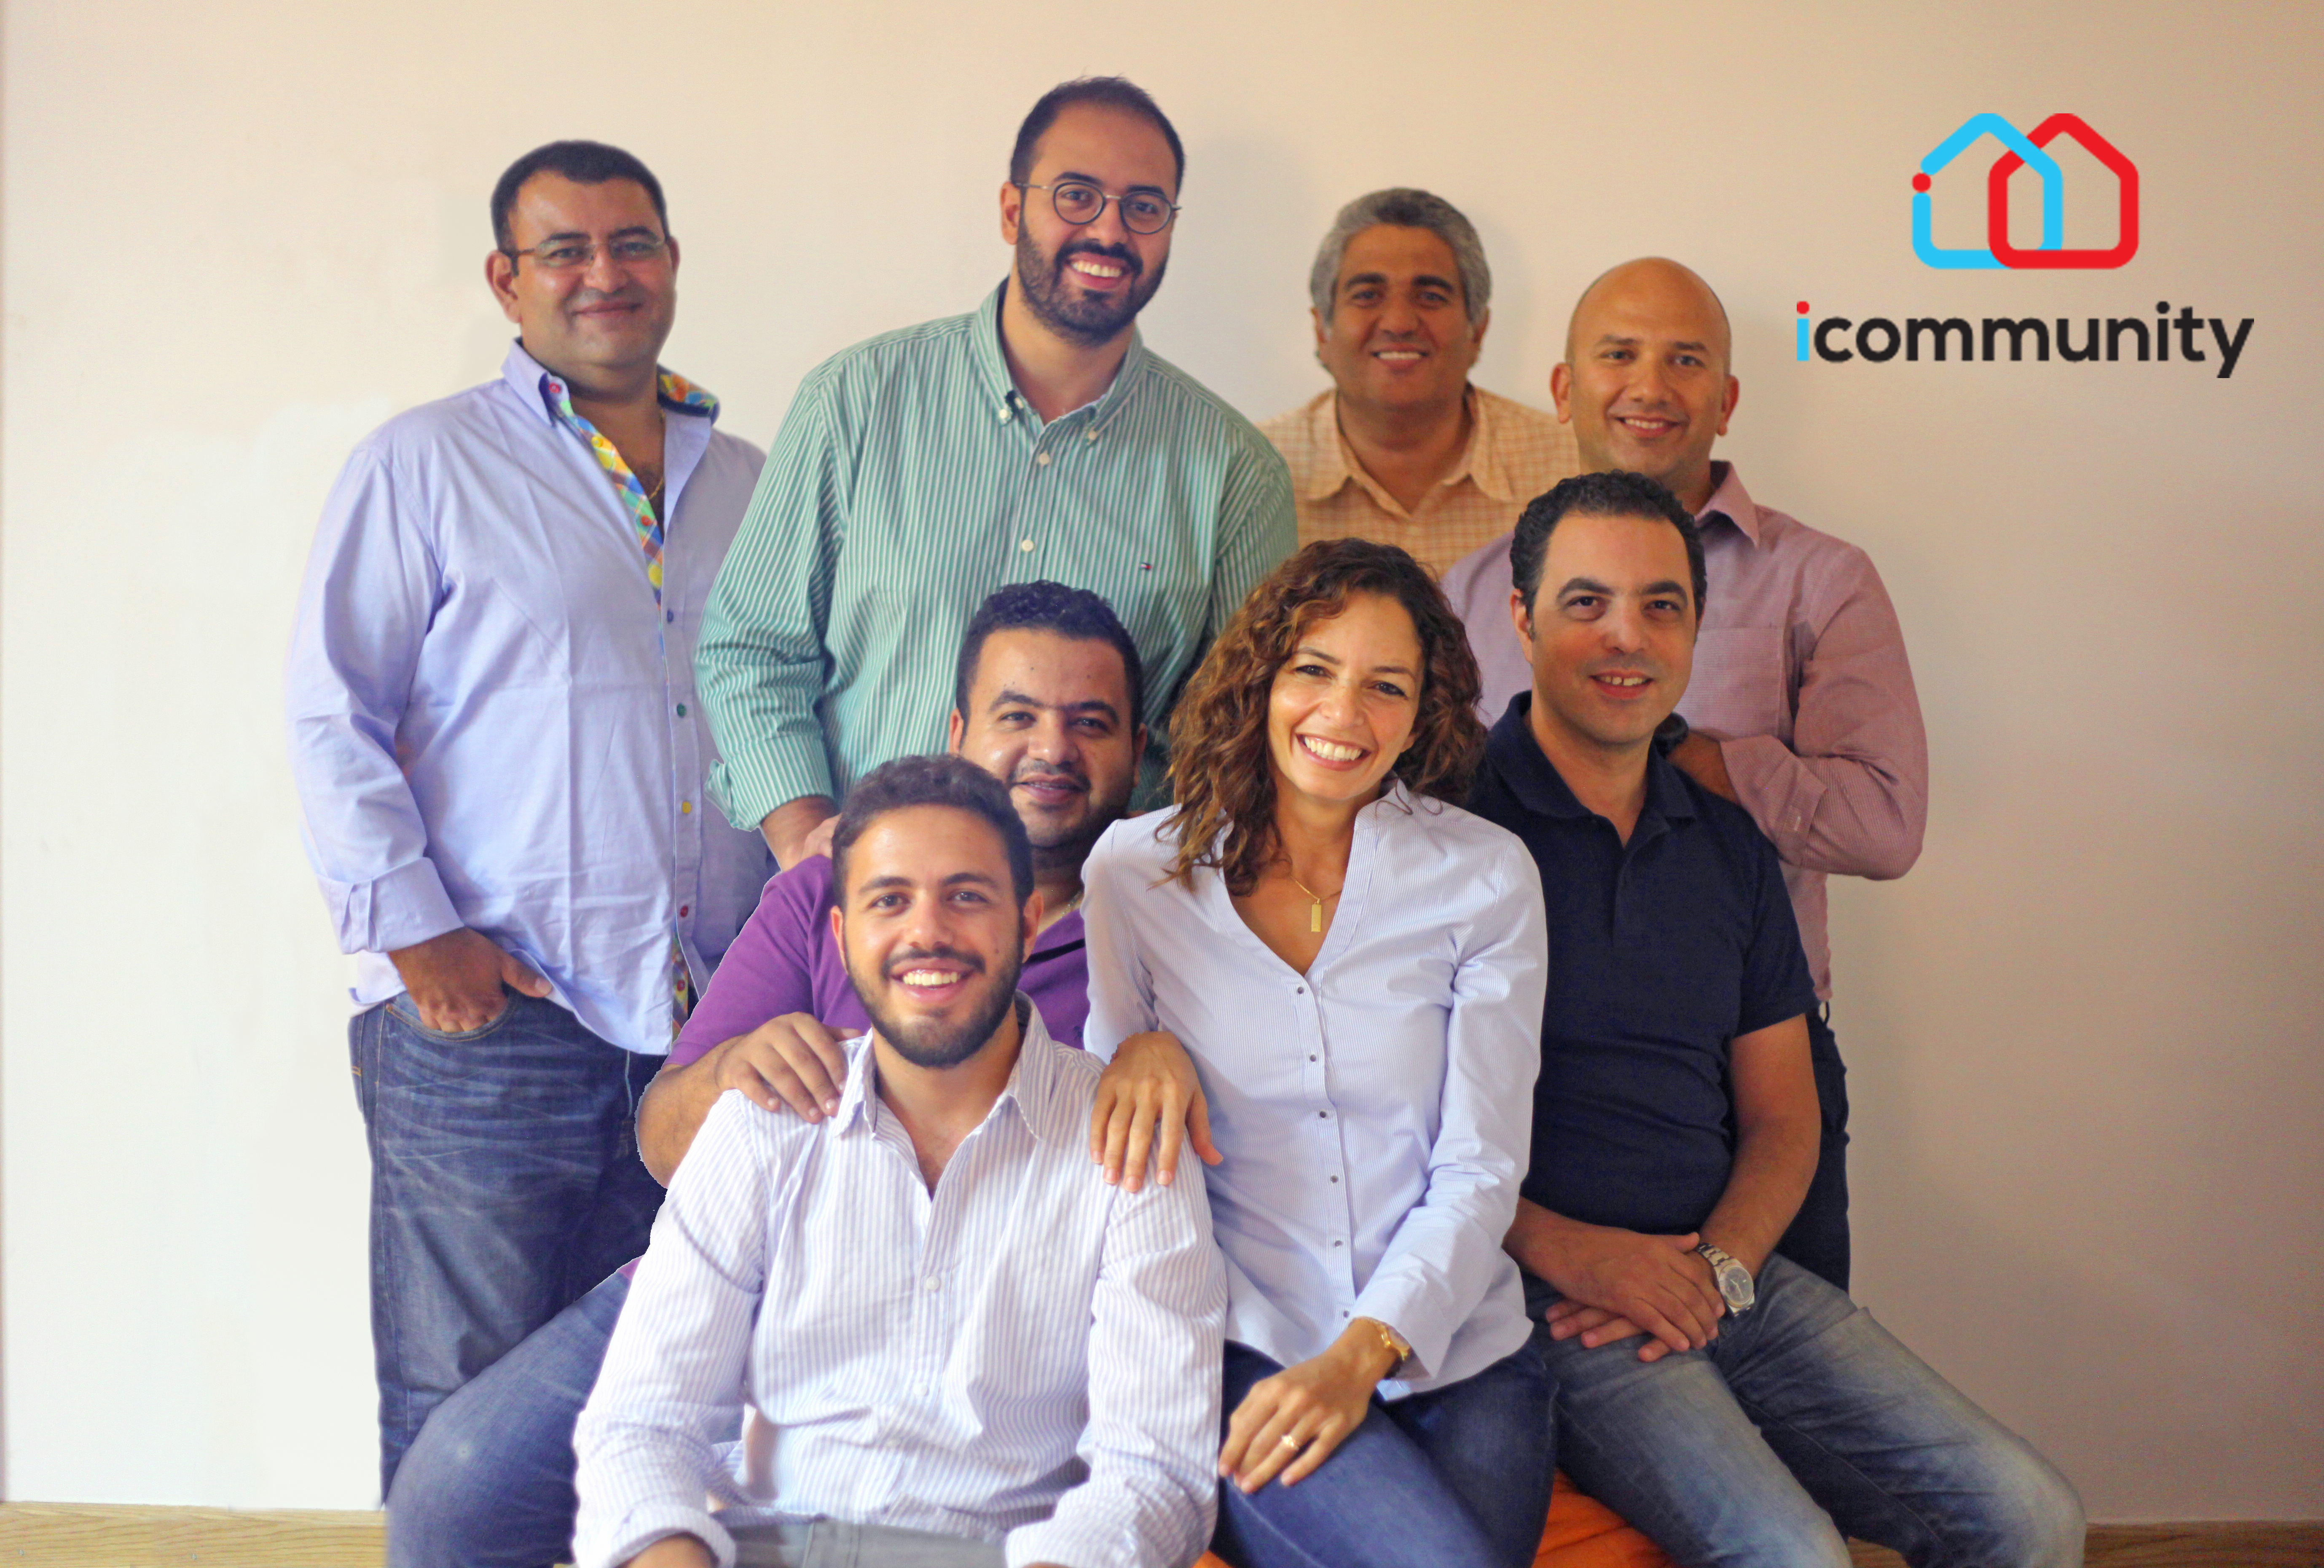 iCommunity, the community management platform, raises $600K in Series A funding from Algebra Ventures